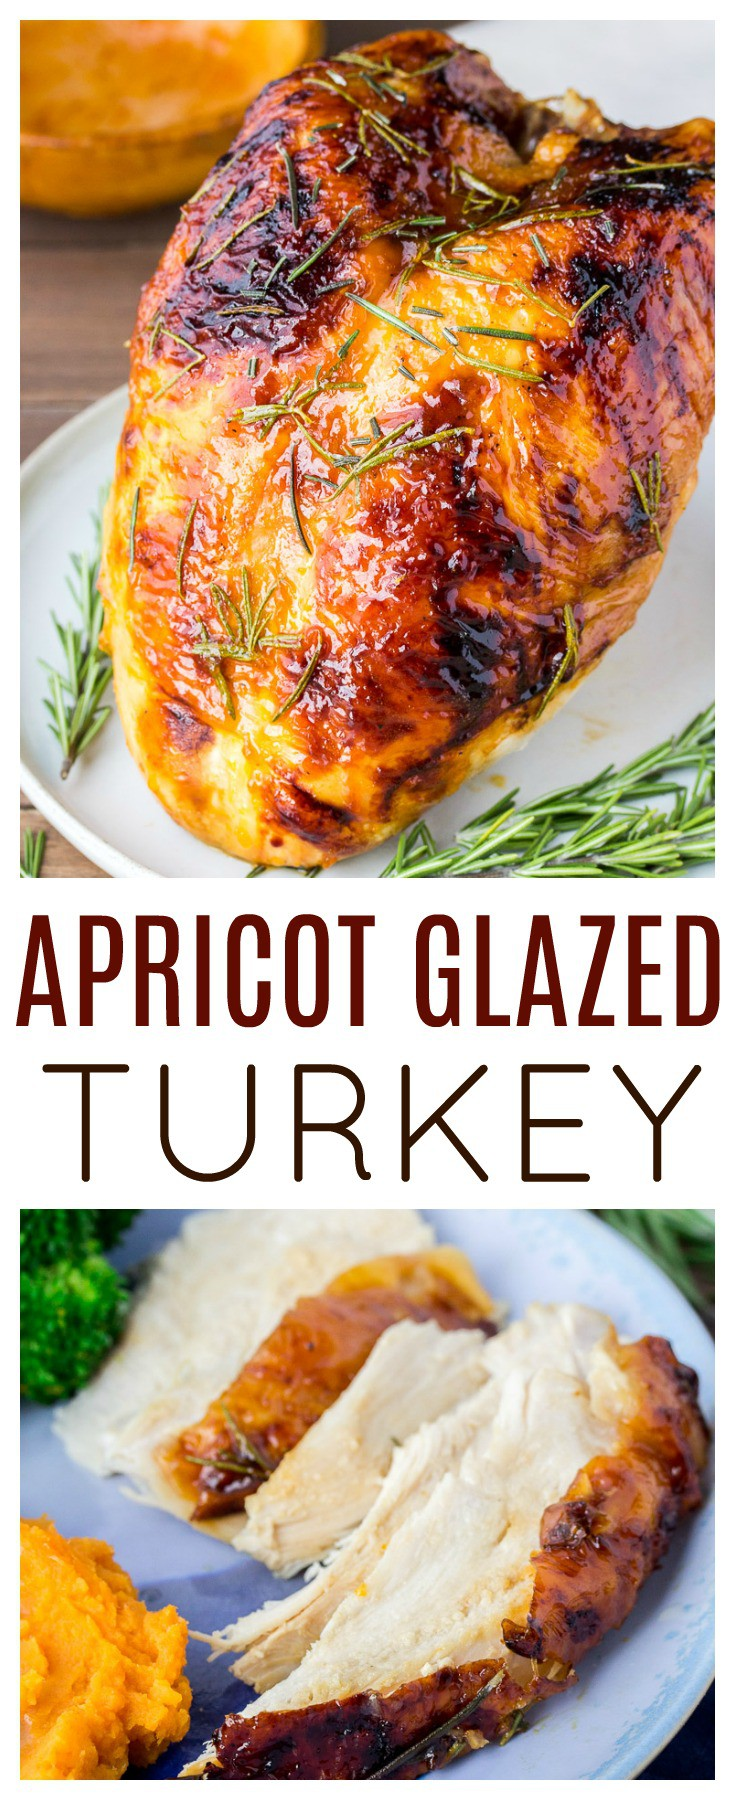 Rosemary Apricot Glazed Turkey Breast - Savory rosemary and sweet apricot are perfect flavors for this turkey recipe! This glazed turkey is not only beautiful, but delicious! It's perfect for Thanksgiving dinner! | #dlbrecipes #thanksgiving #turkey #apricotturkey #turkeyrecipe